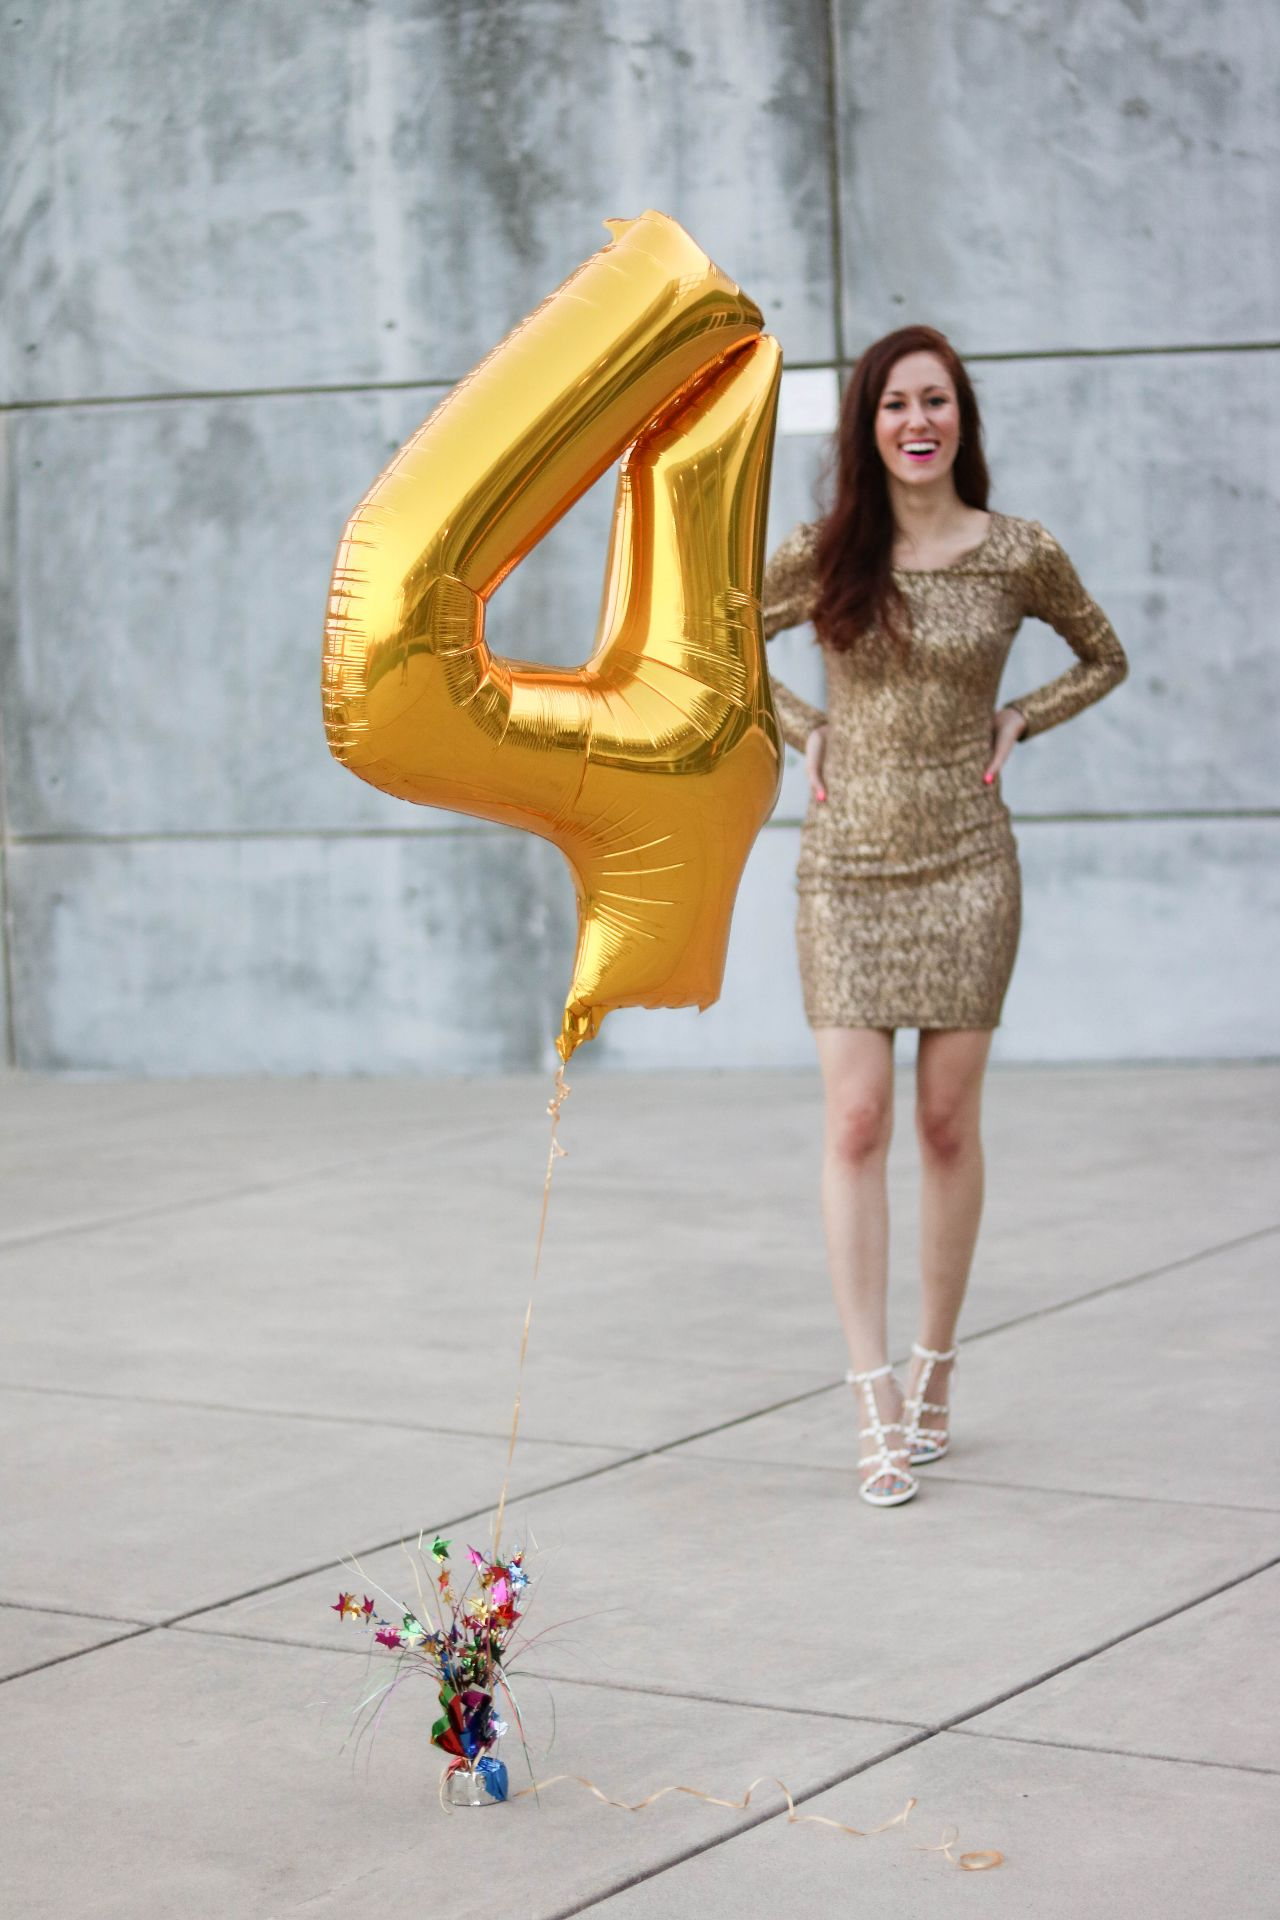 4th Blogiversary! 10 Lessons Learned in 4 Years of Blogging